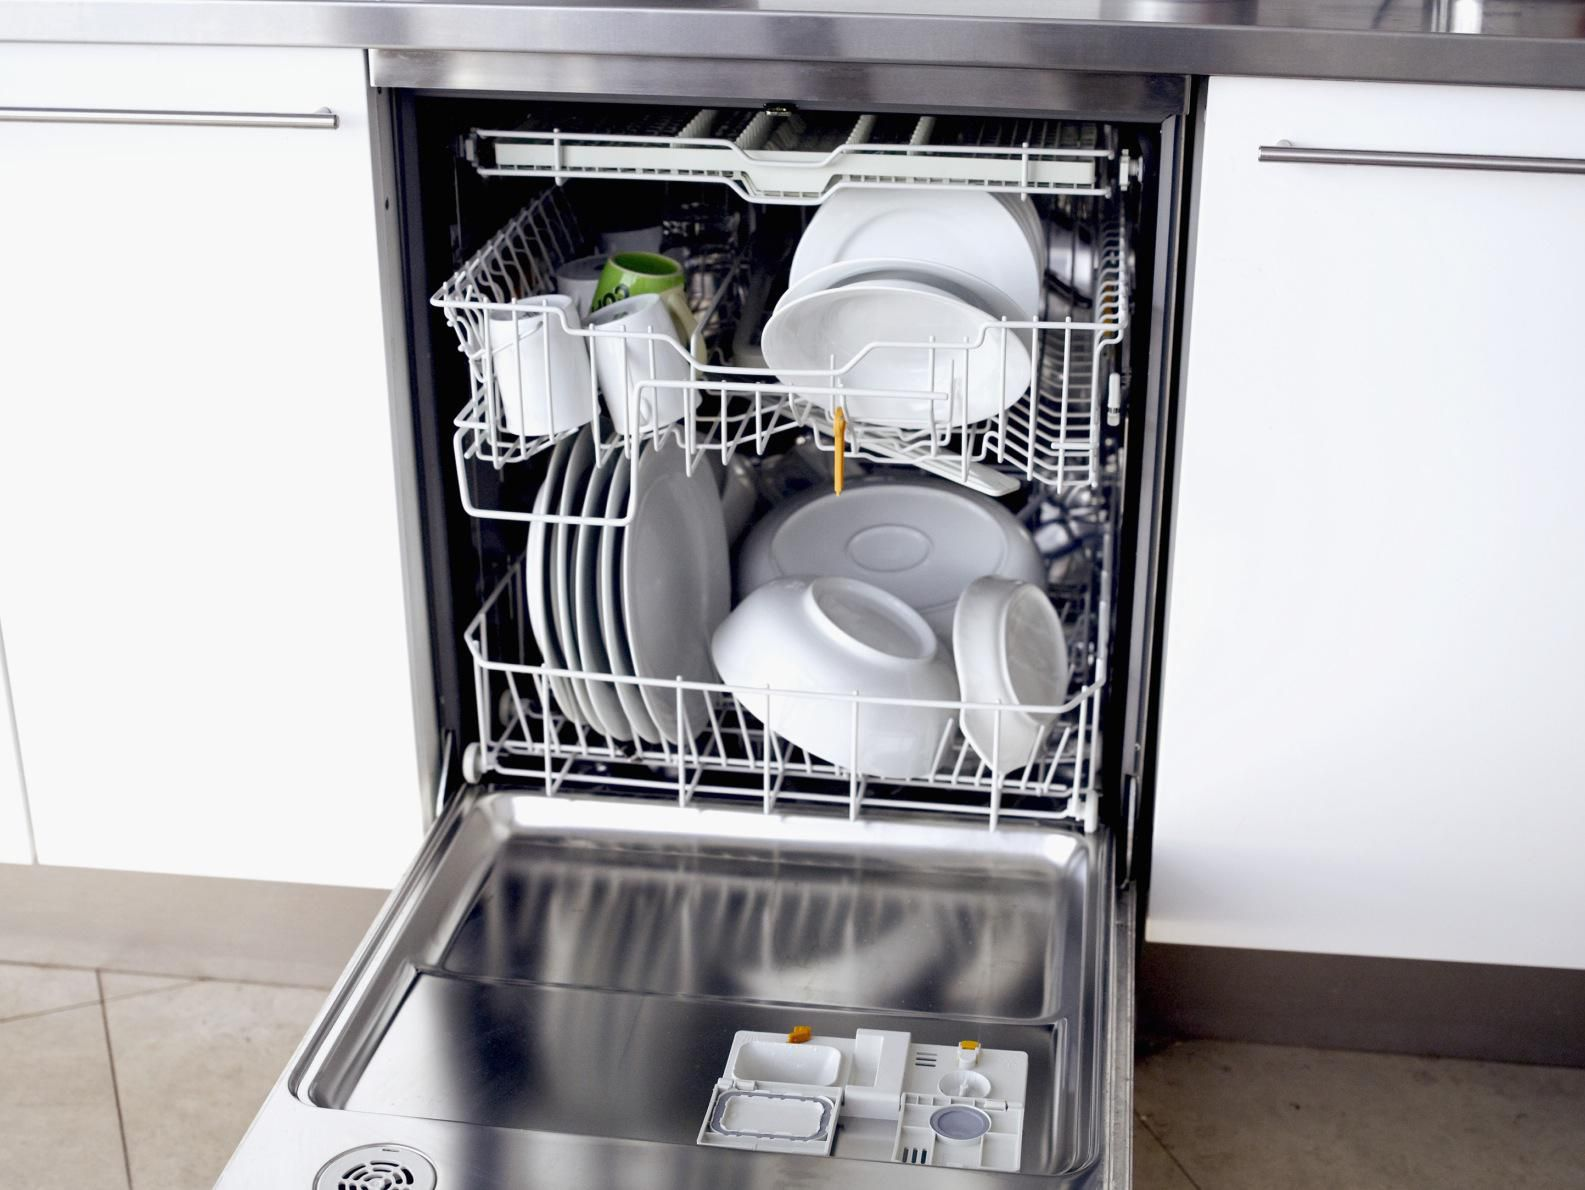 How To Install A New Dishwasher Garbage Disposal And Electrical Wiring Outlet Connection Fix All